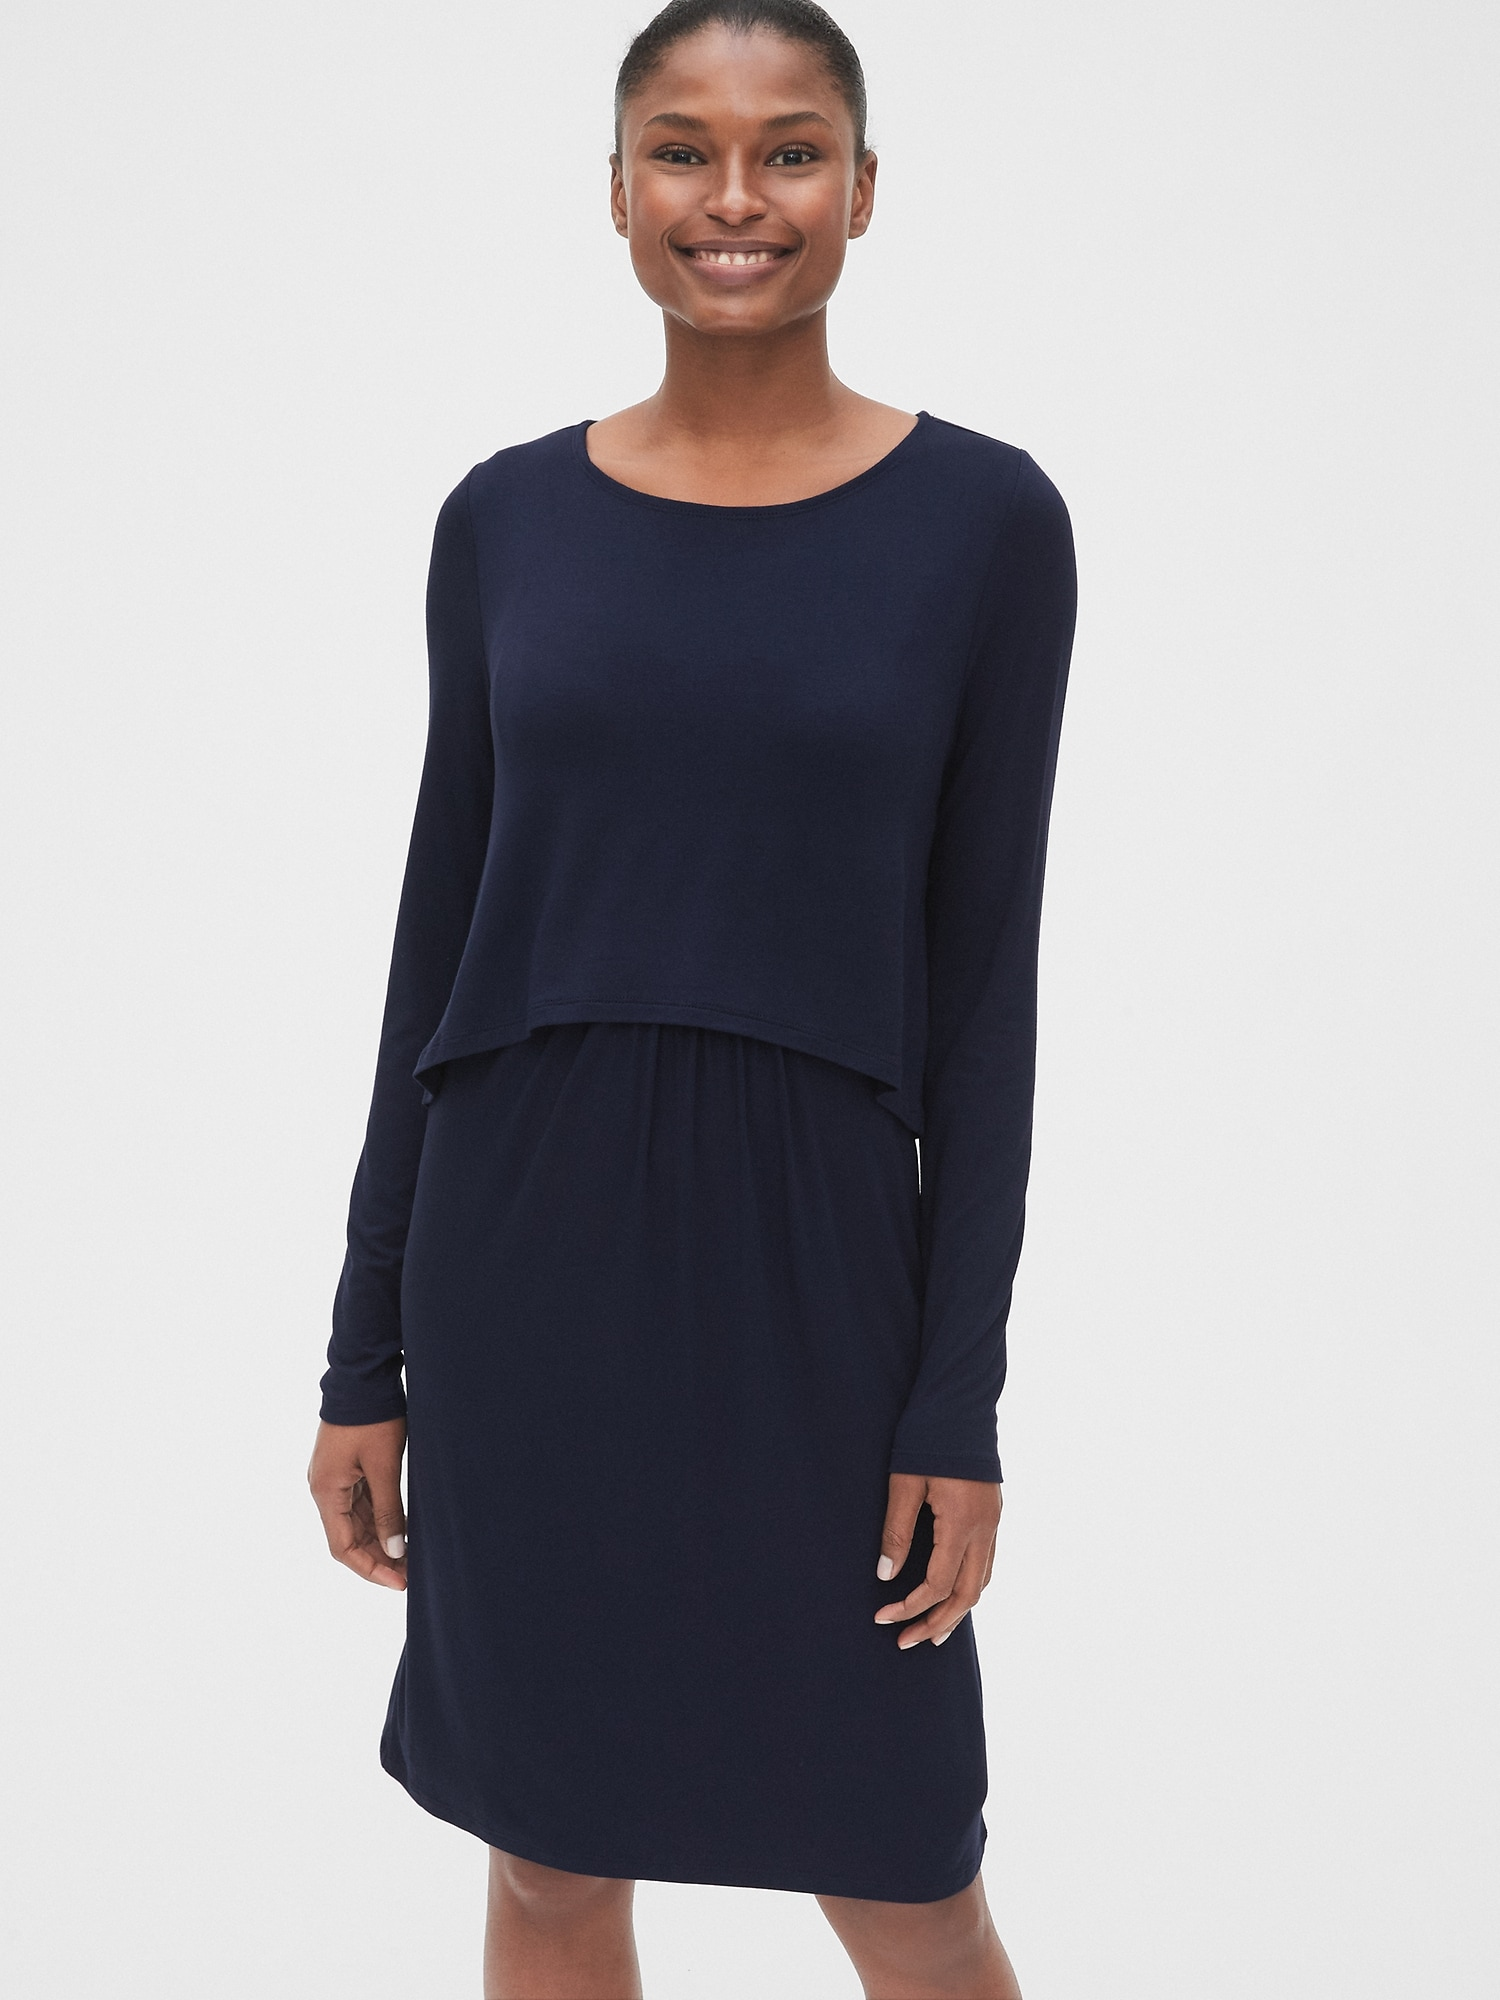 online store best outlet store sale Maternity Long Sleeve Layered Nursing Dress | Gap